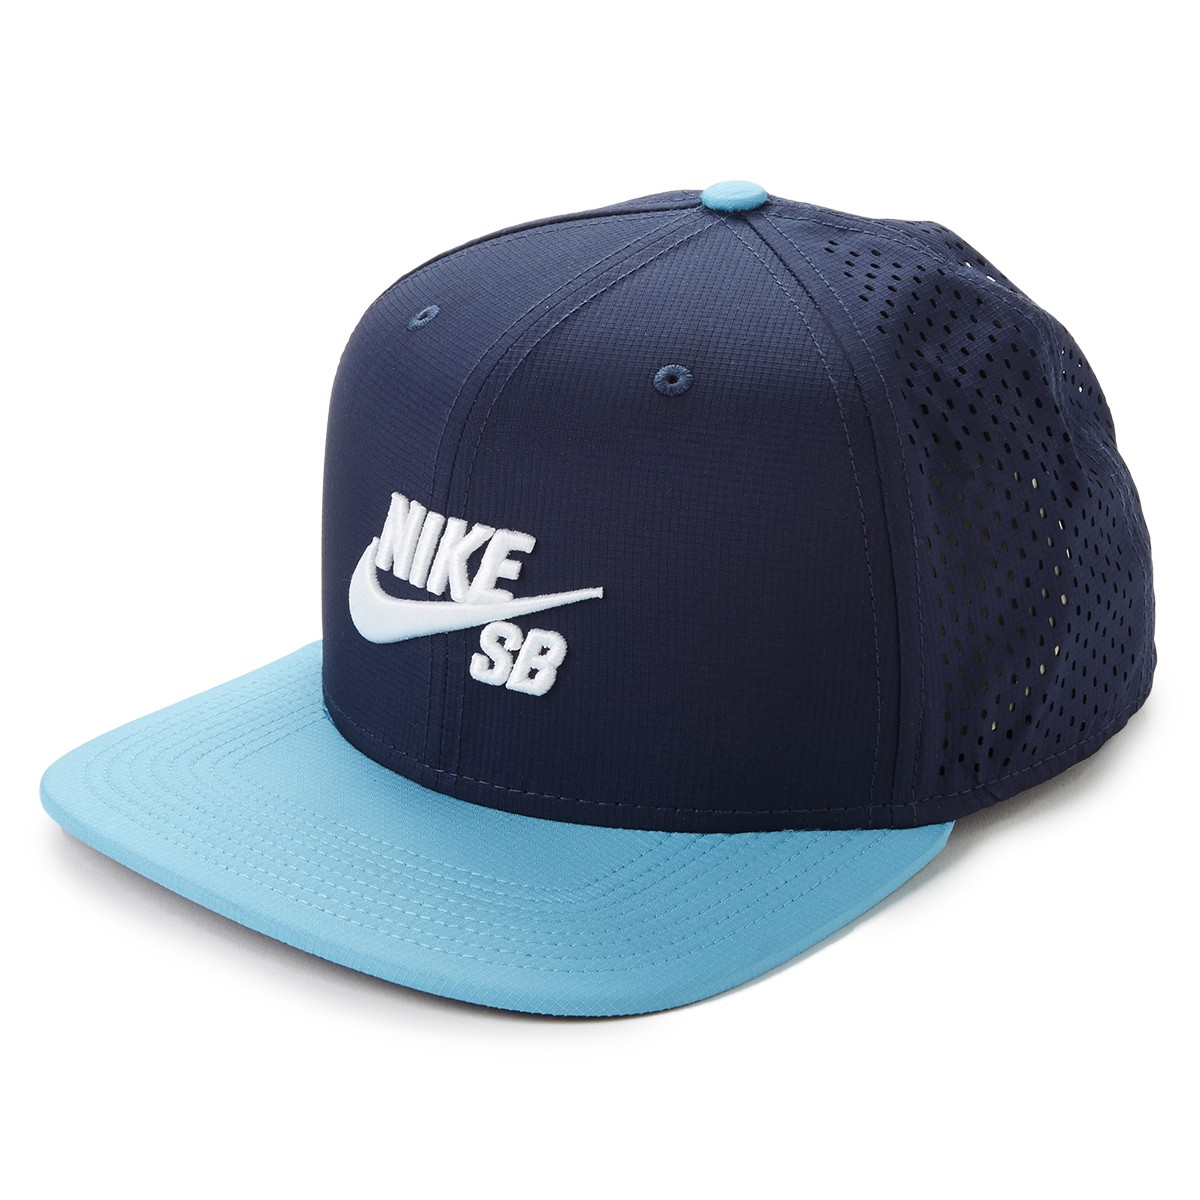 Nike SB Performance Hat - Obsidian/Blue/Black